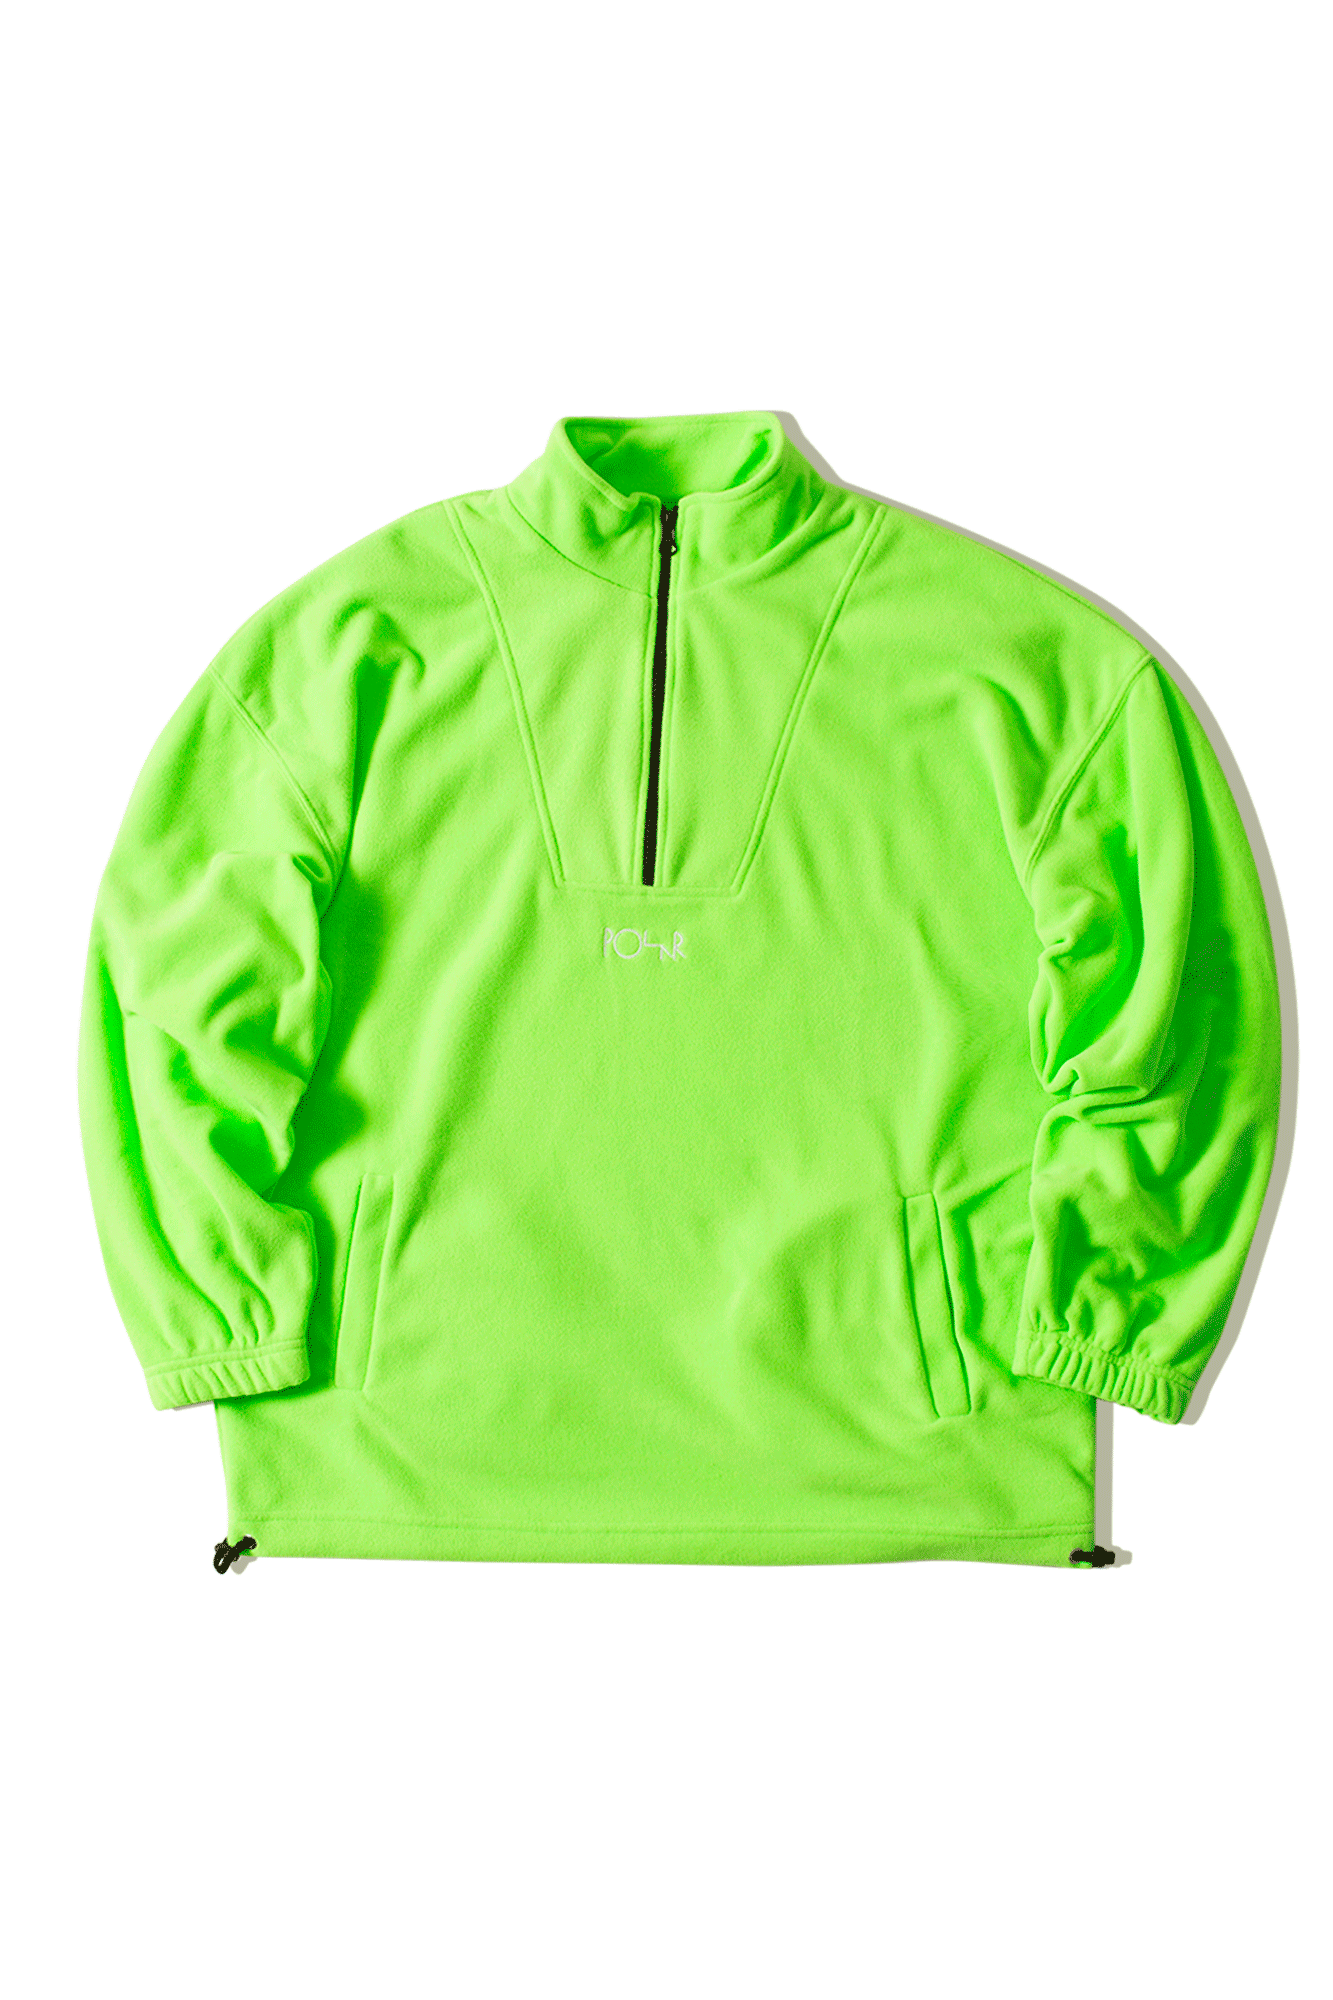 Polar Sweaters Lightweight Fleece Pullover Multicolor POLLFPGGGE#000#CKO#XS - One Block Down